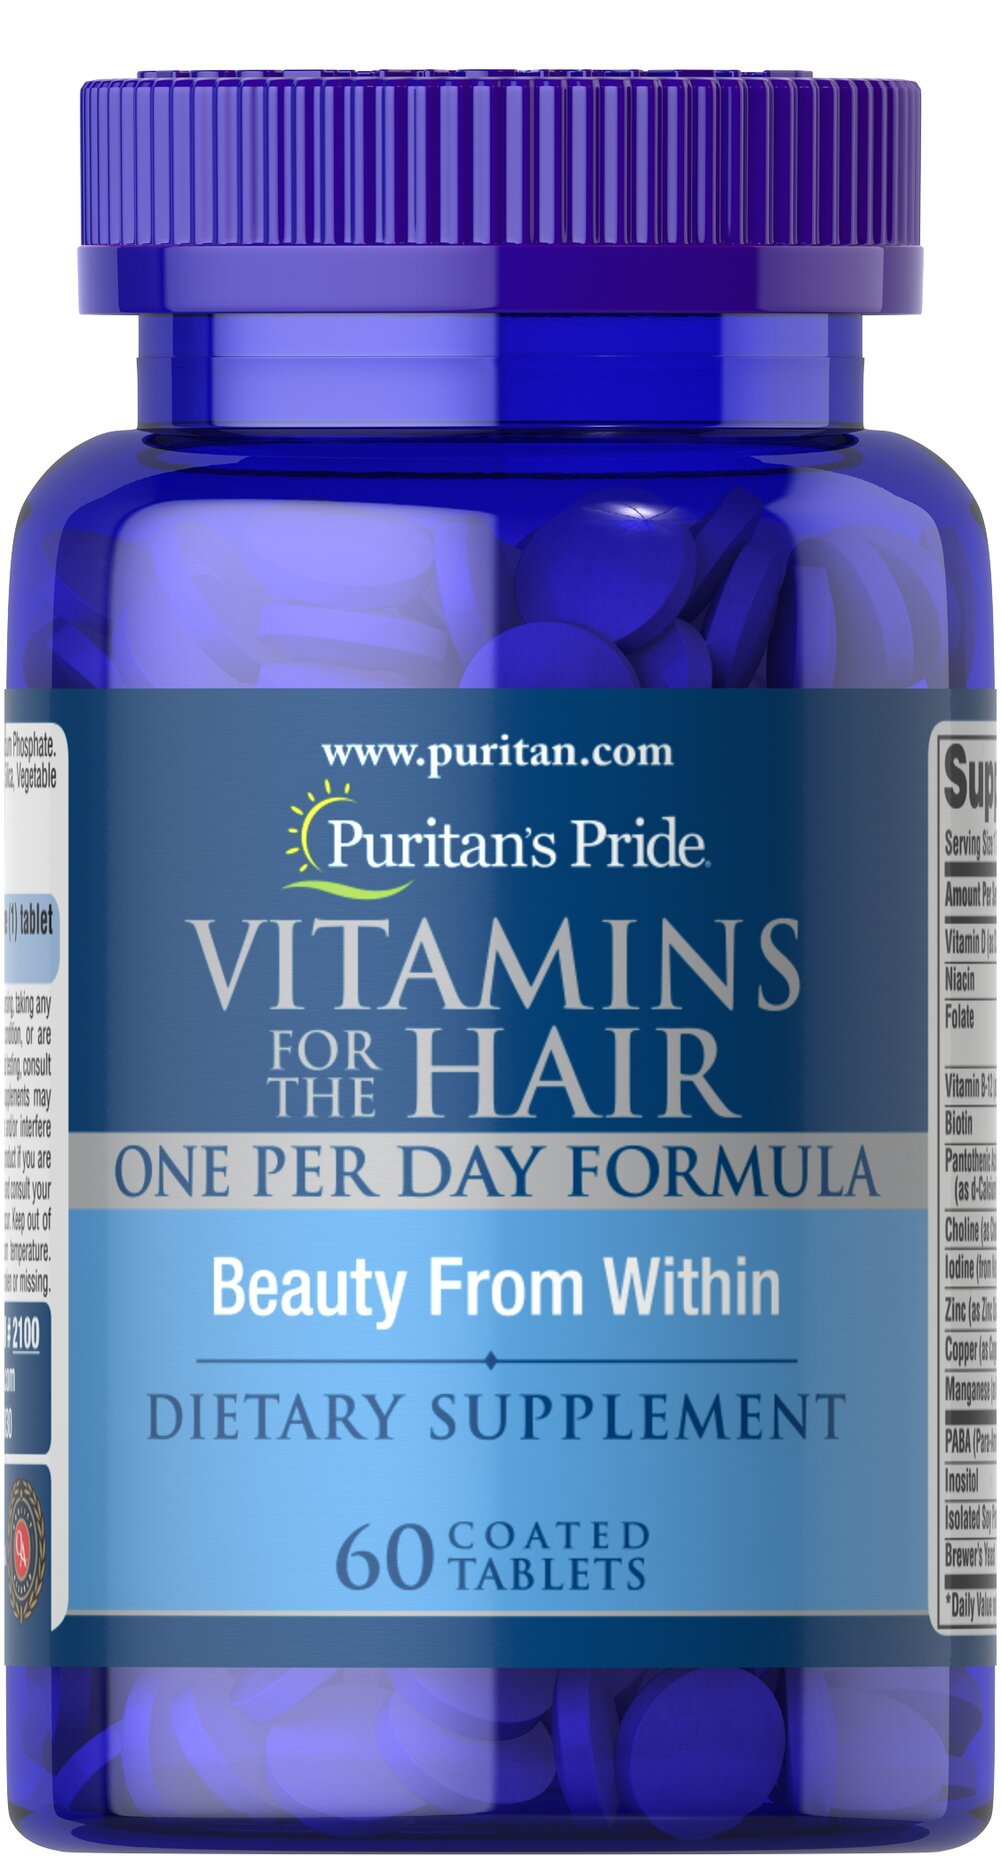 Vitamins for the Hair <p>A Natural Vitamin-Mineral Complex, especially Formulated for your Hair</p><p>Puritan's Pride has formulated Vitamins  for the Hair, to supplement your diet plan for a healthier looking head of hair.  Feed your hair the vitamins and minerals needed to help it be its healthiest.**</p> 60 Coated Caplets  $12.99